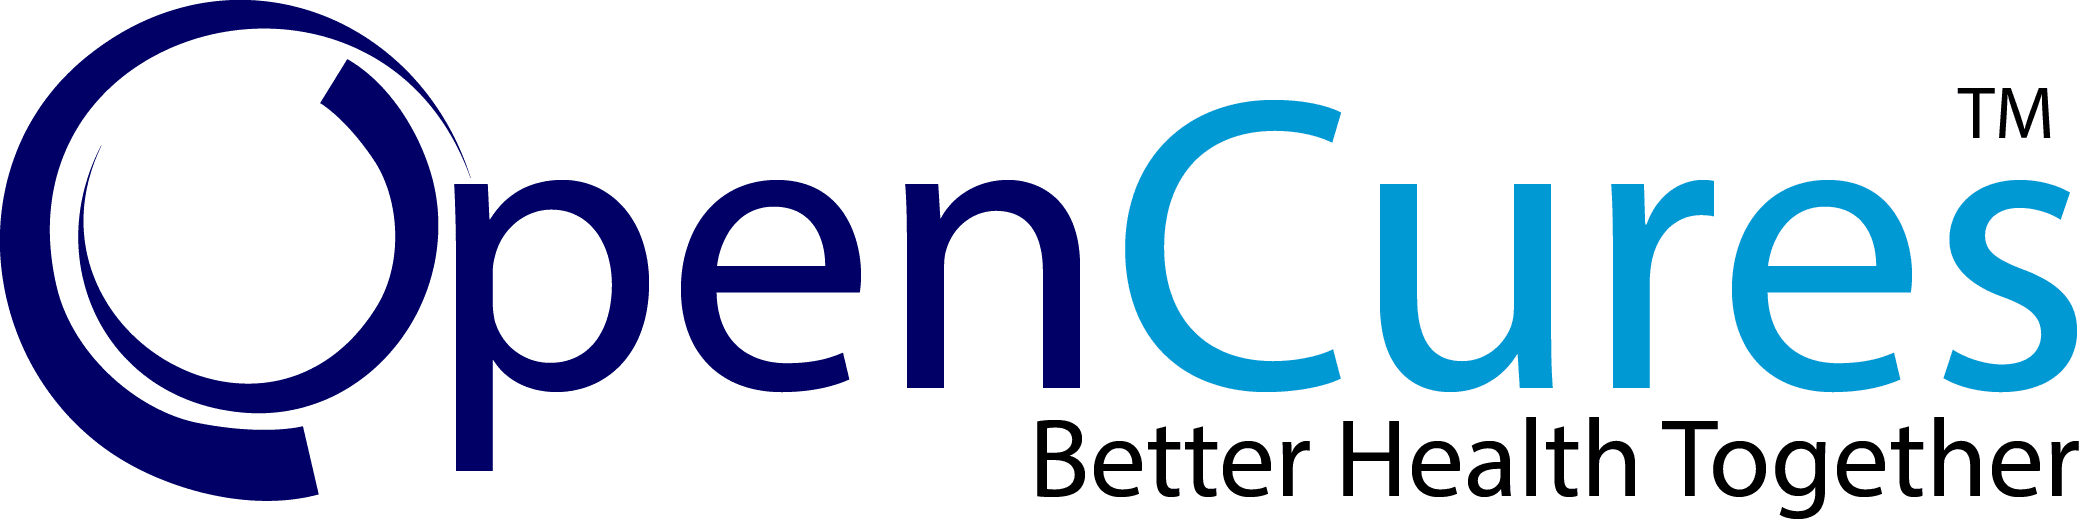 OpenCures_logo